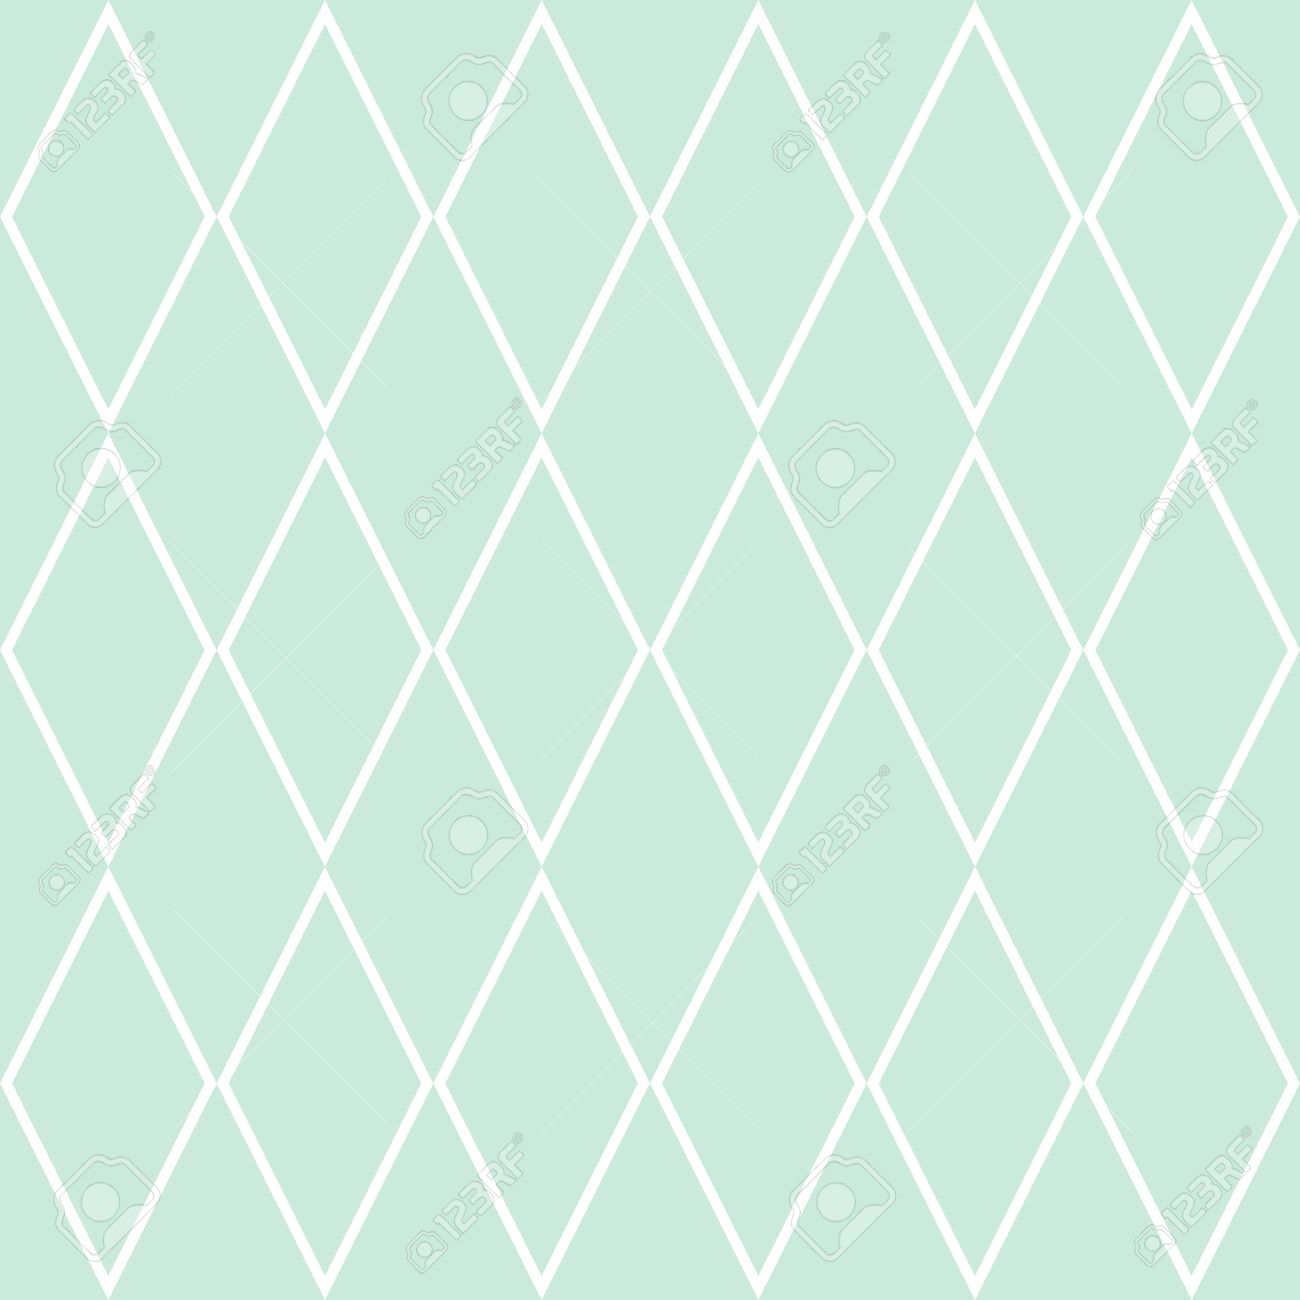 Tile Pattern Or Mint Green And White Wallpaper Background Royalty ...